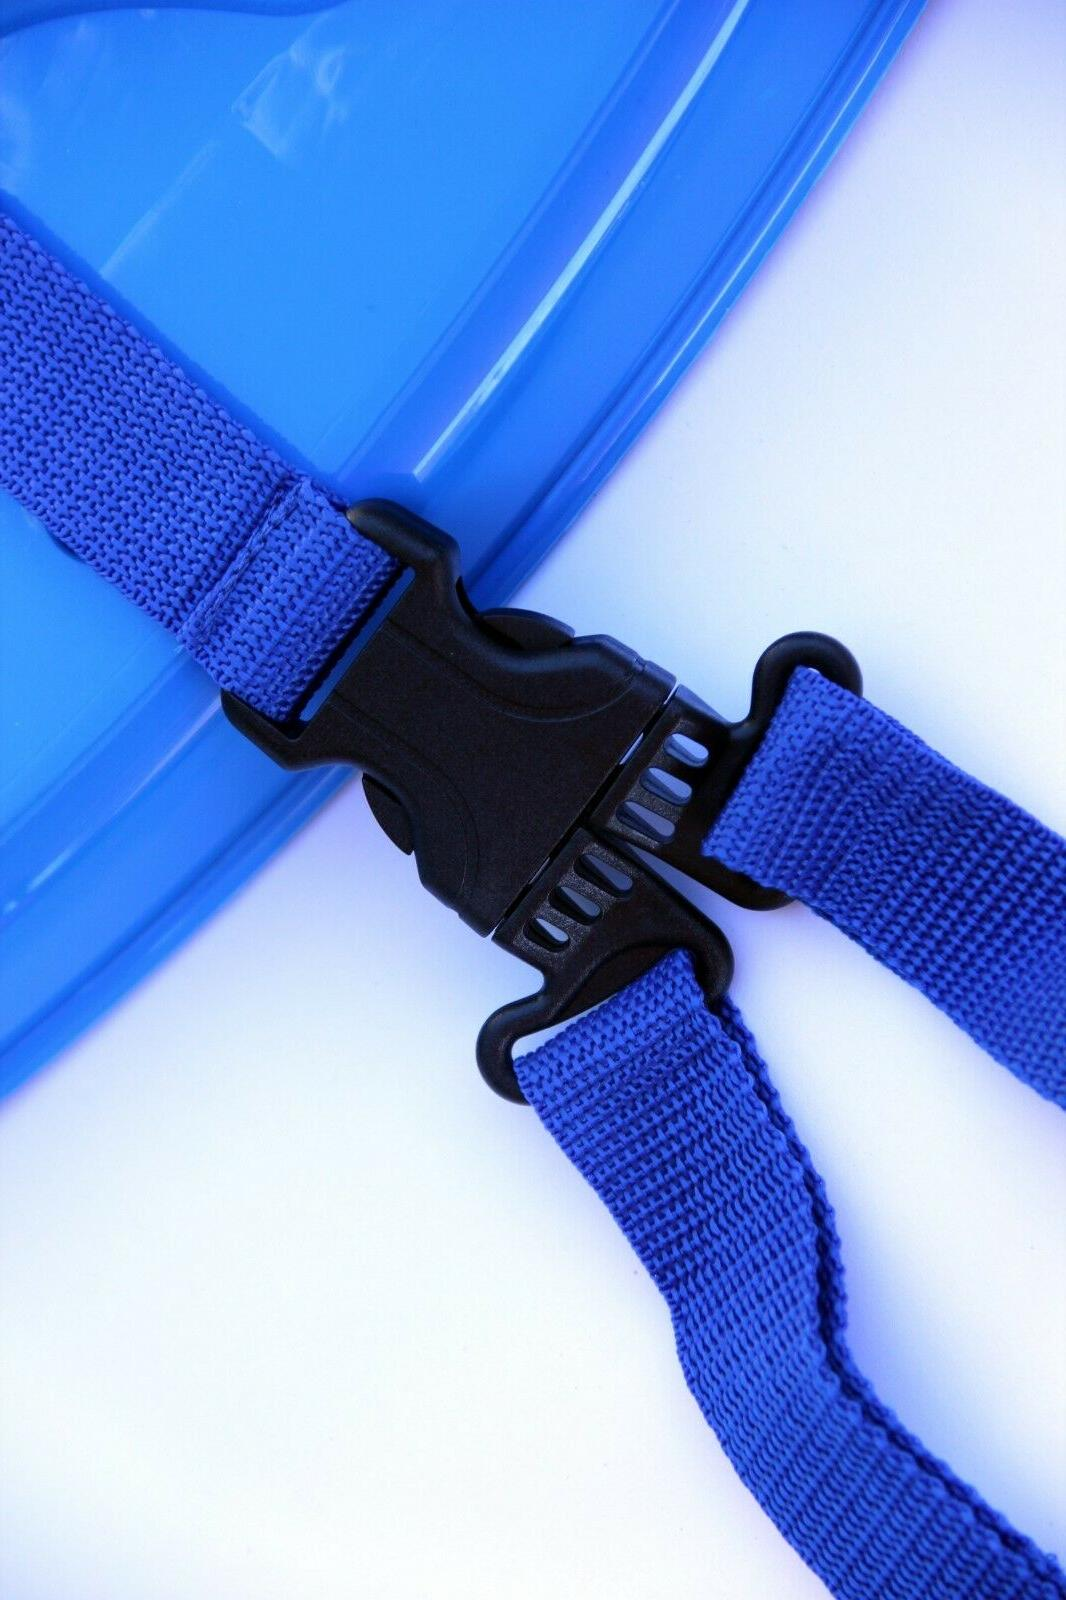 3-in-1 to Swing Secure Outdoor Play